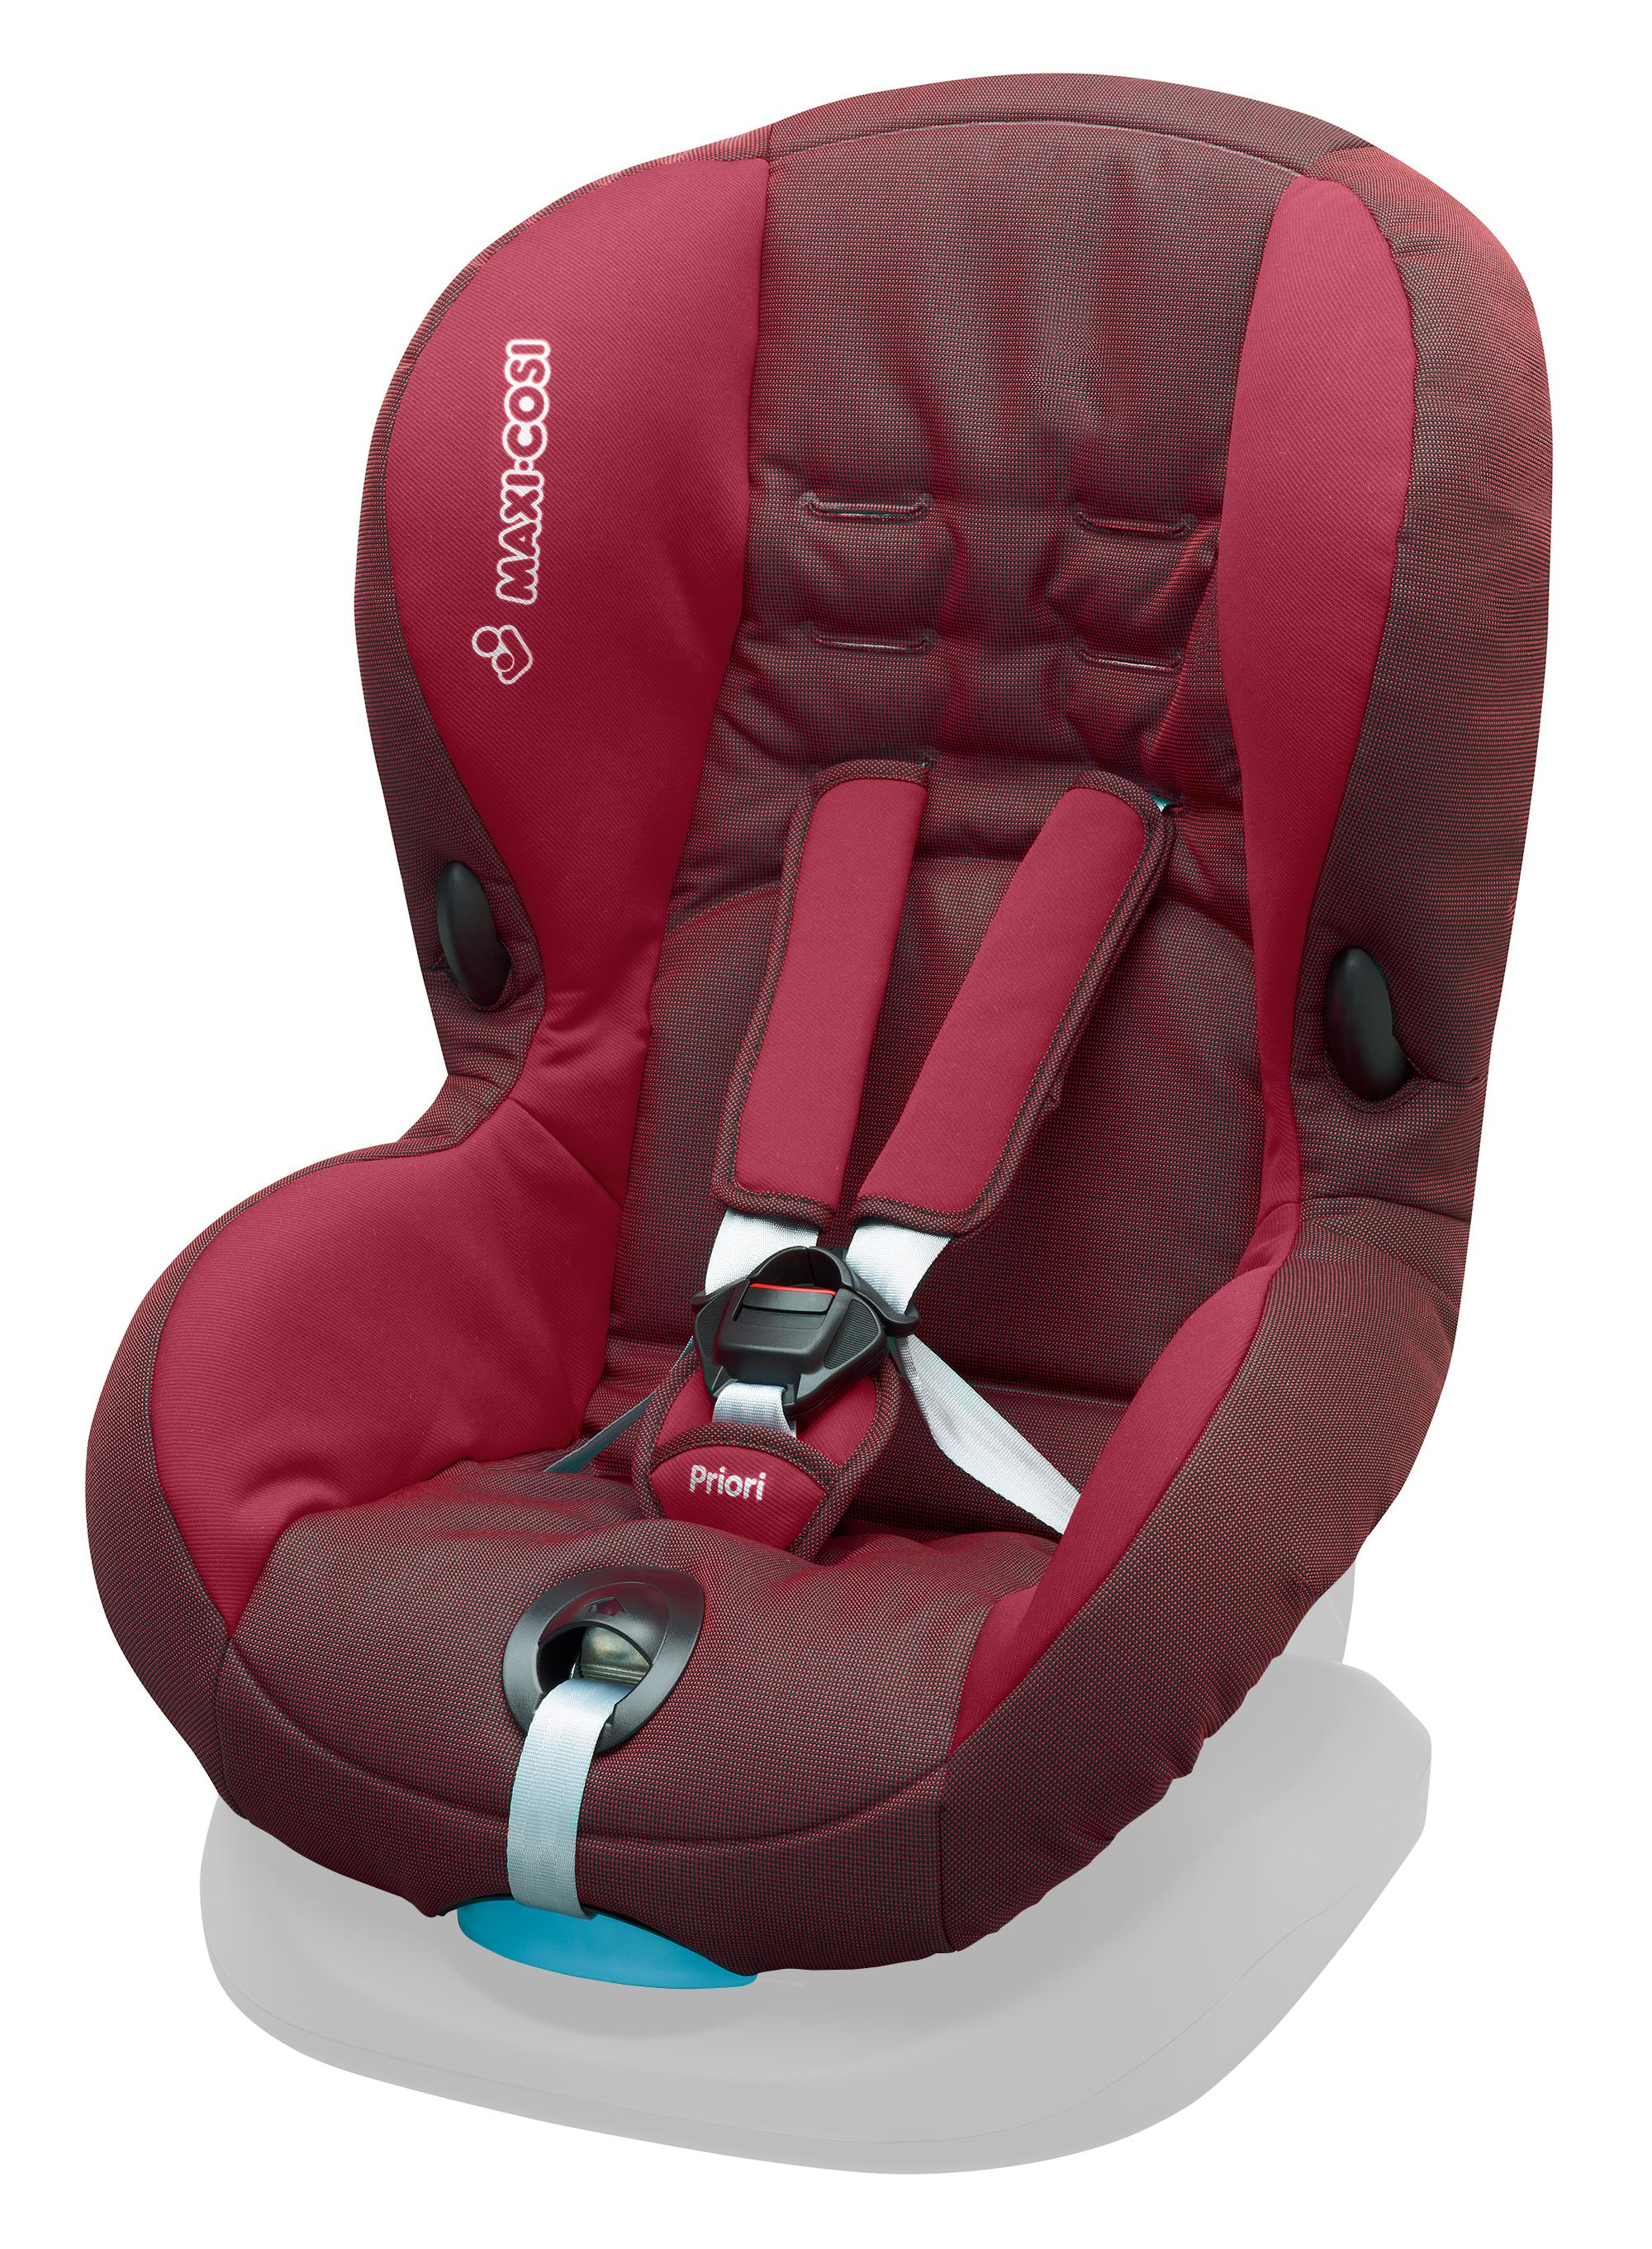 maxi cosi priori sps sps car seat replacement cover carmine red baby. Black Bedroom Furniture Sets. Home Design Ideas